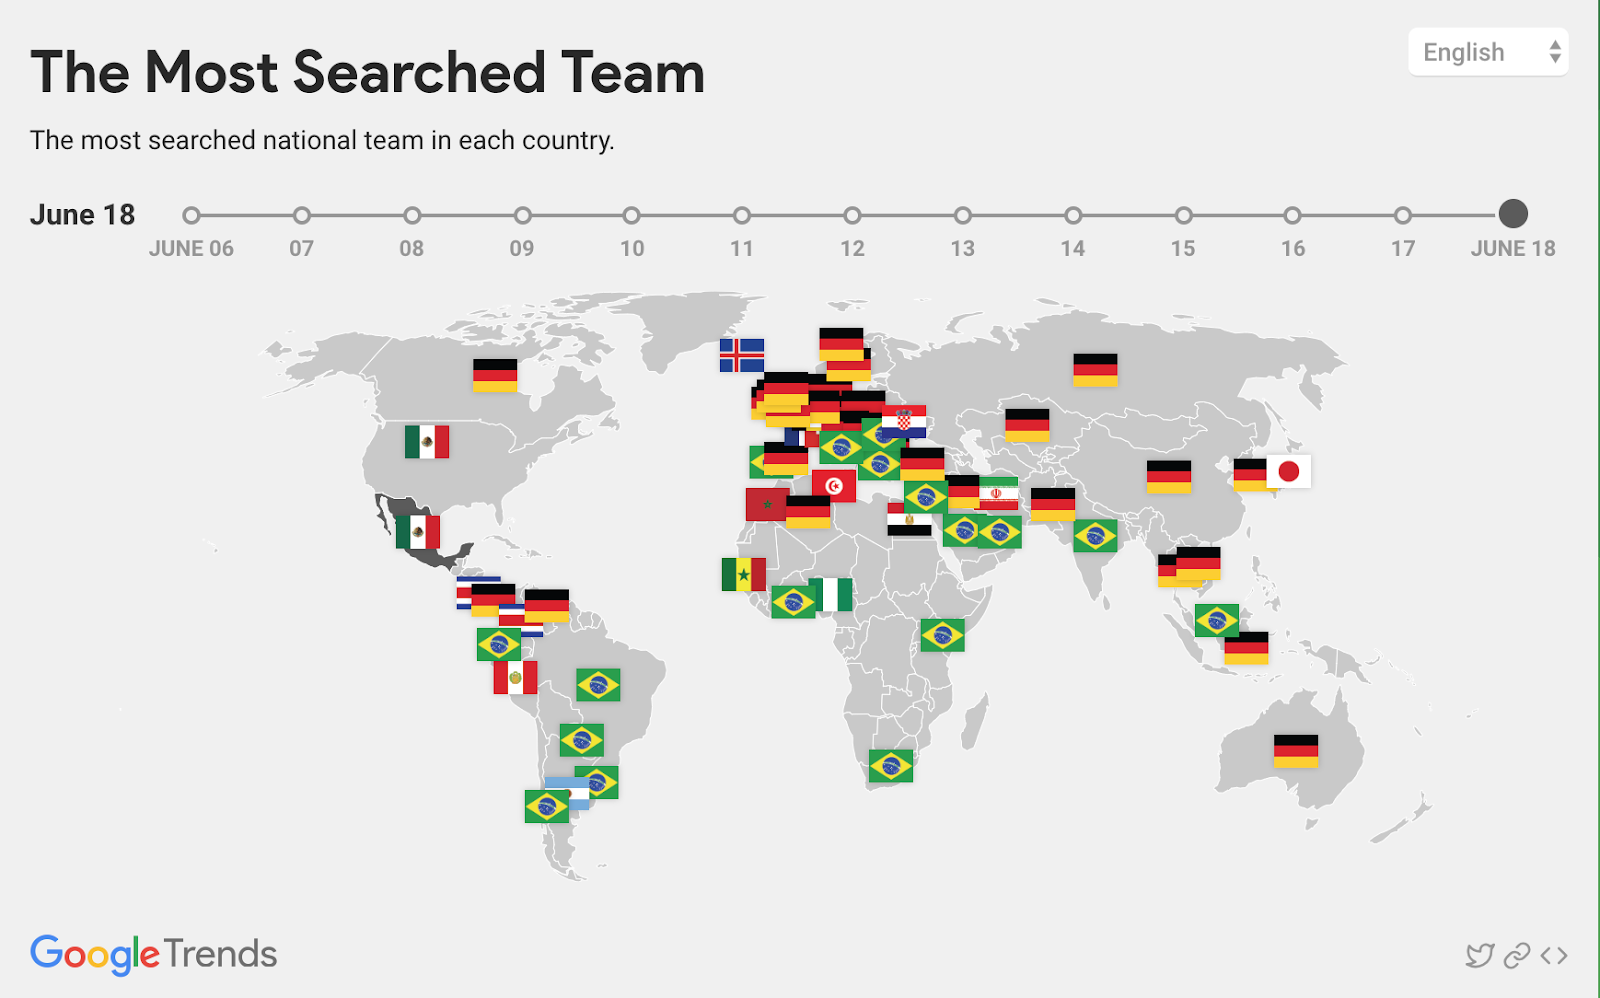 The most searched teams by country